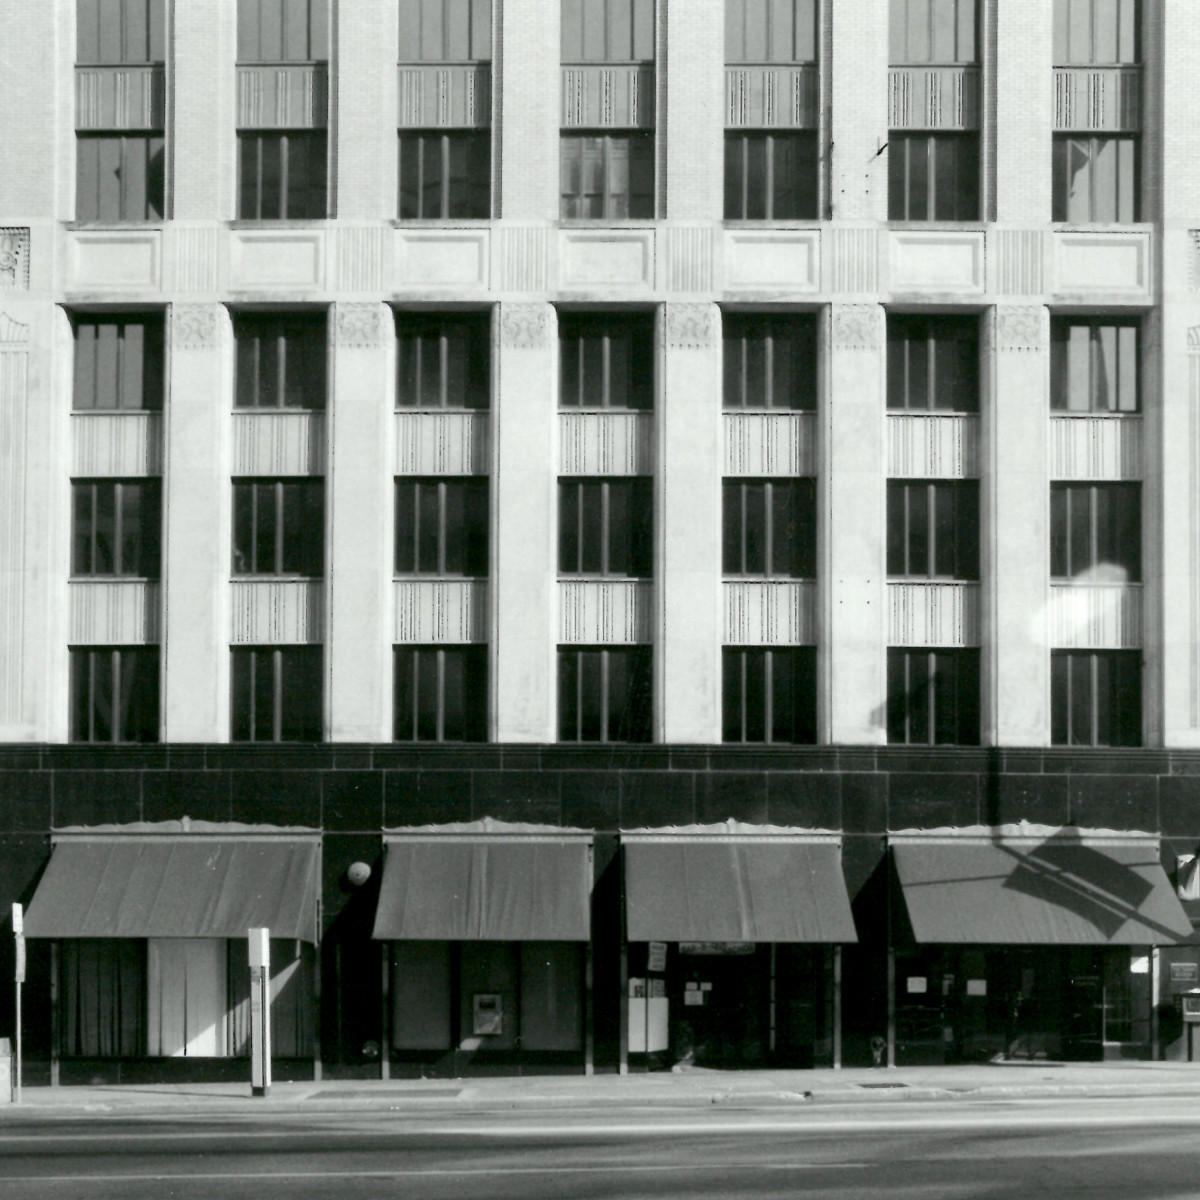 Cambria Hotel in late 1980s